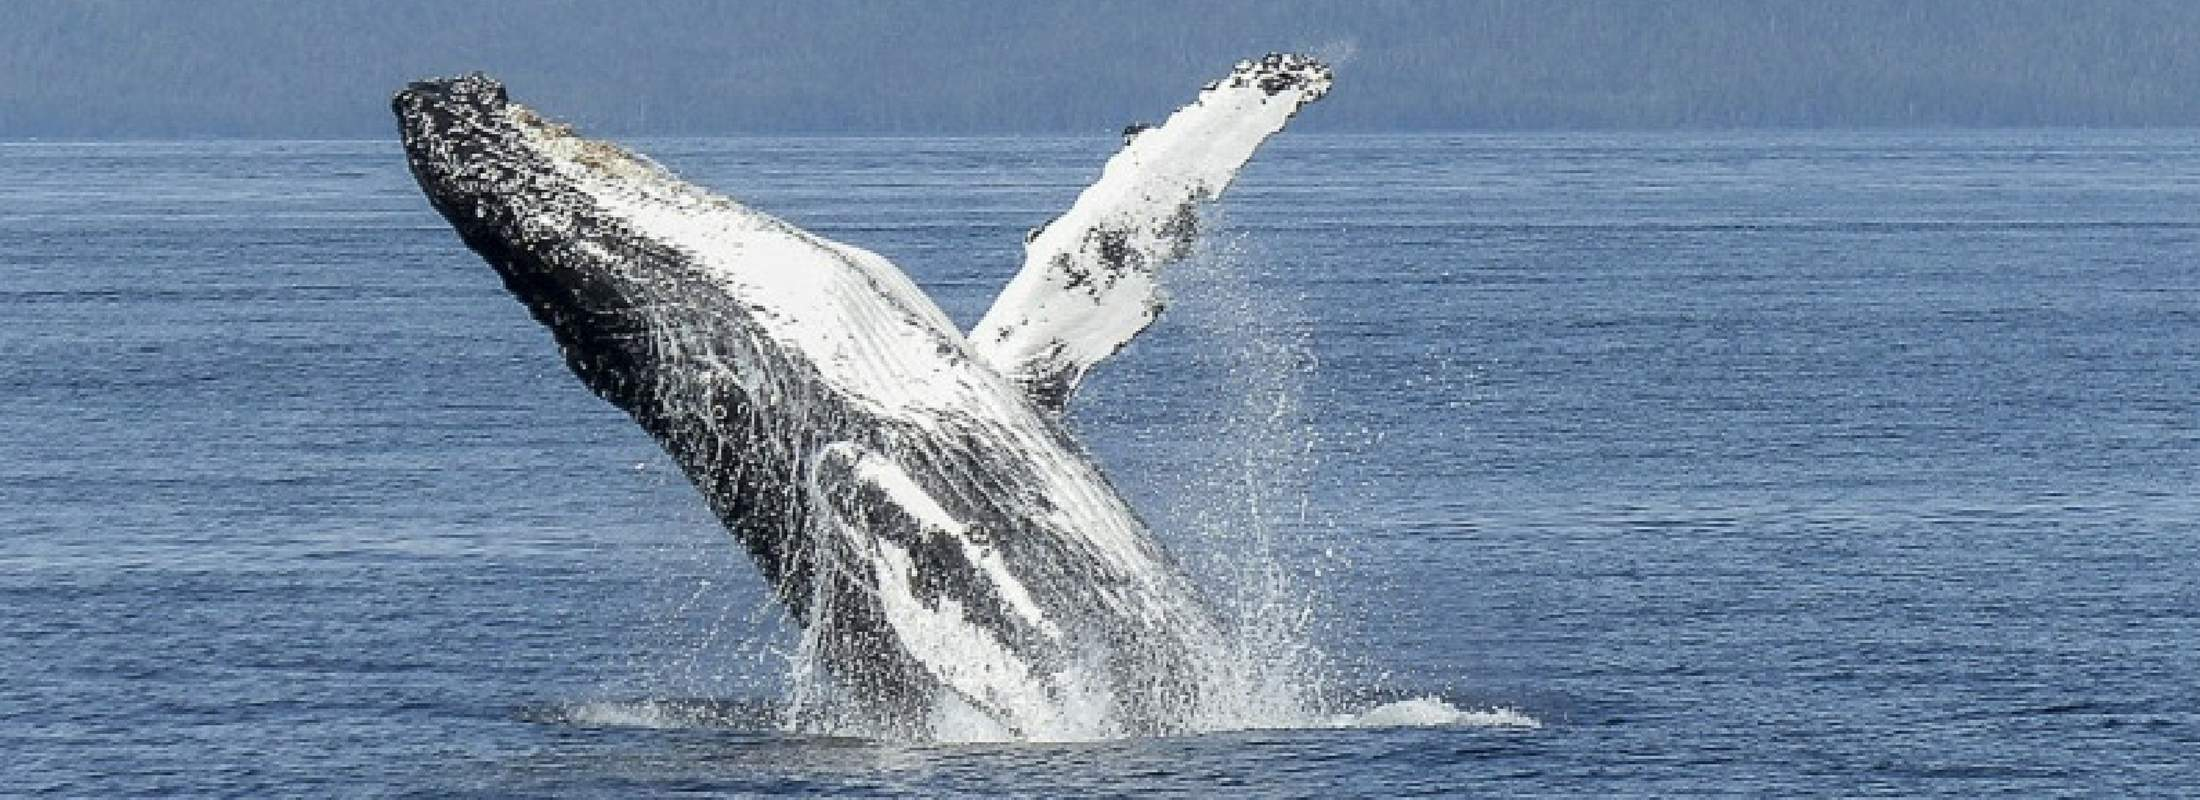 Whale breaching the ocean's surface